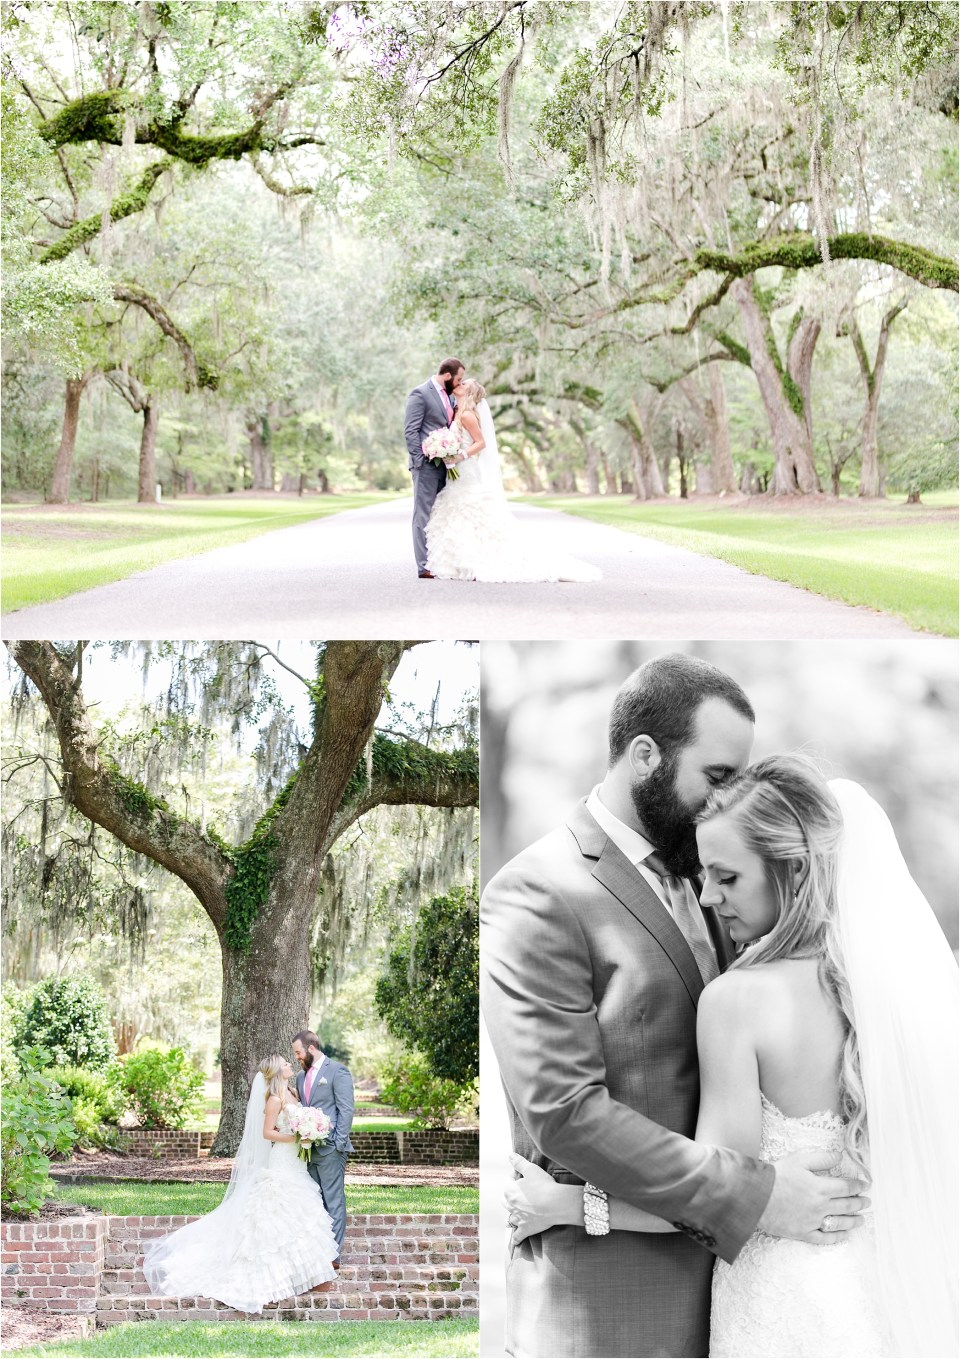 Costola-Photography-Charleston-Wedding-Lowcountry